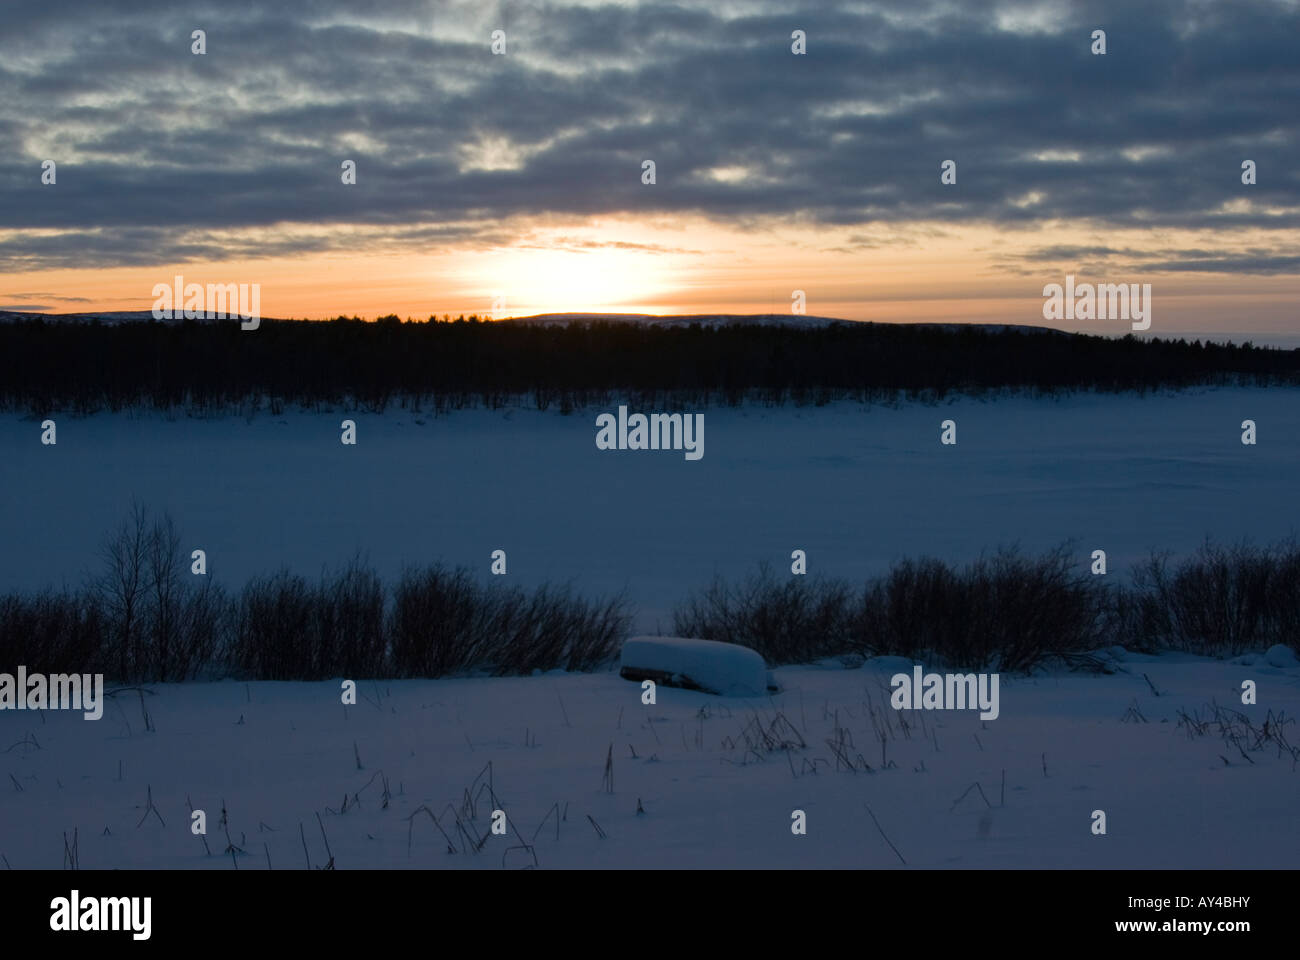 A river boat buried in snow at the shore of tornio river in finnish lapland - Stock Image